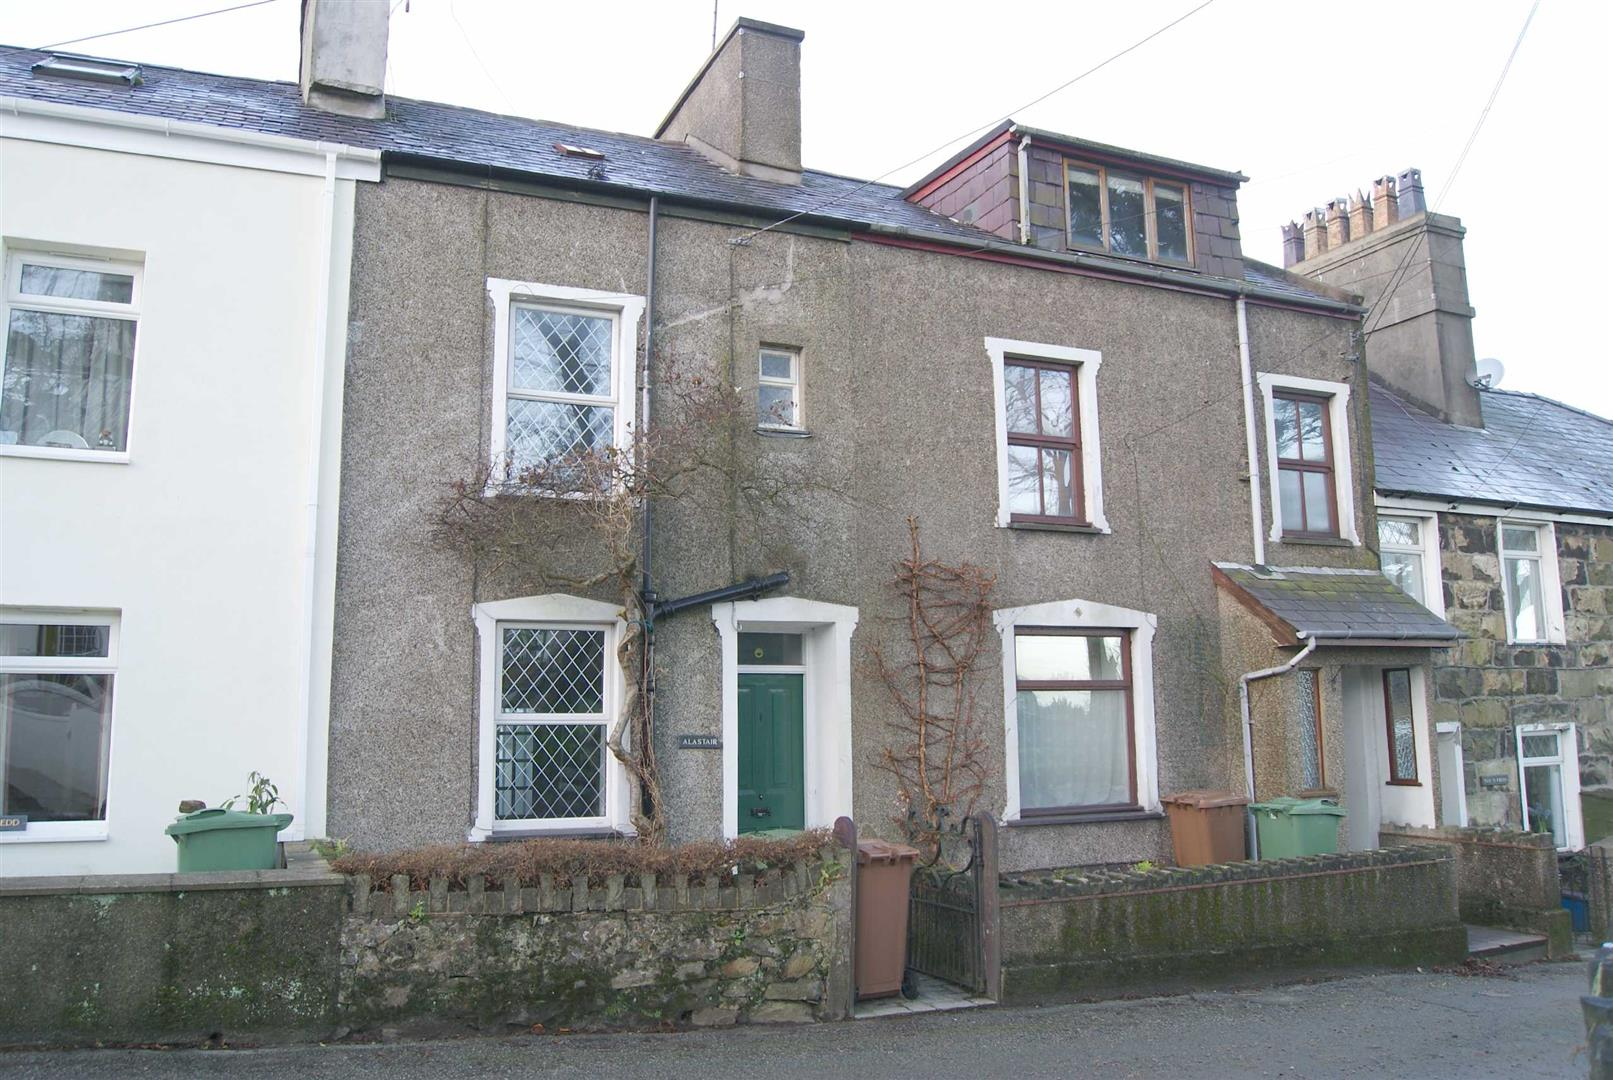 Y Fron, Nefyn - £110,000/Offers around